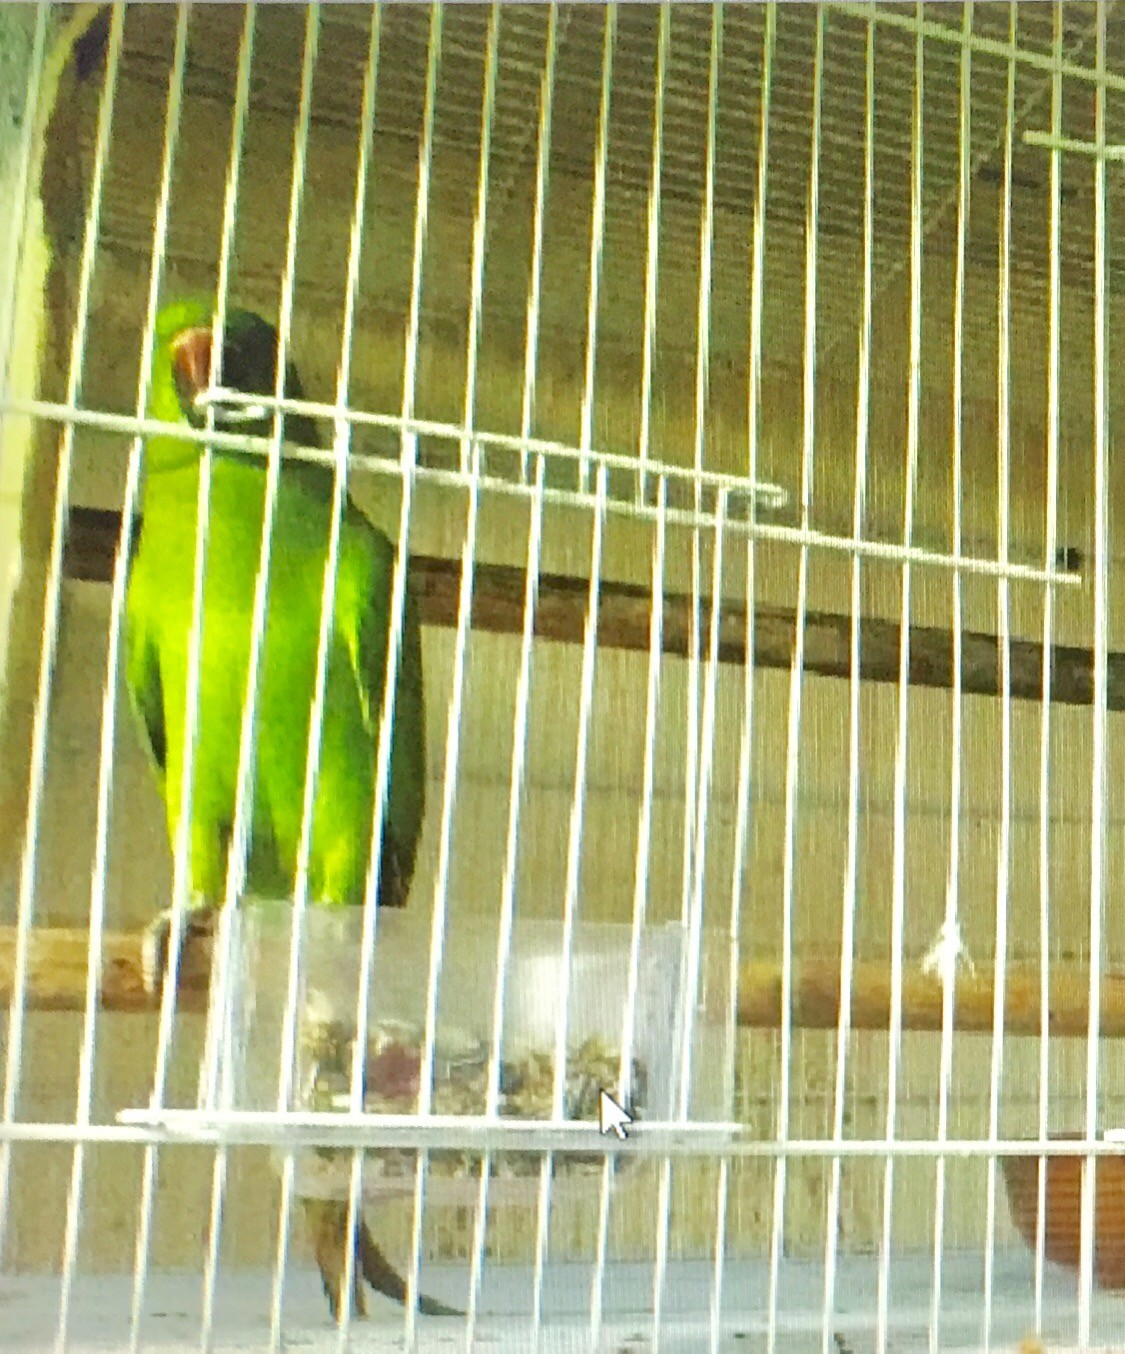 Green Indian parrot for sale